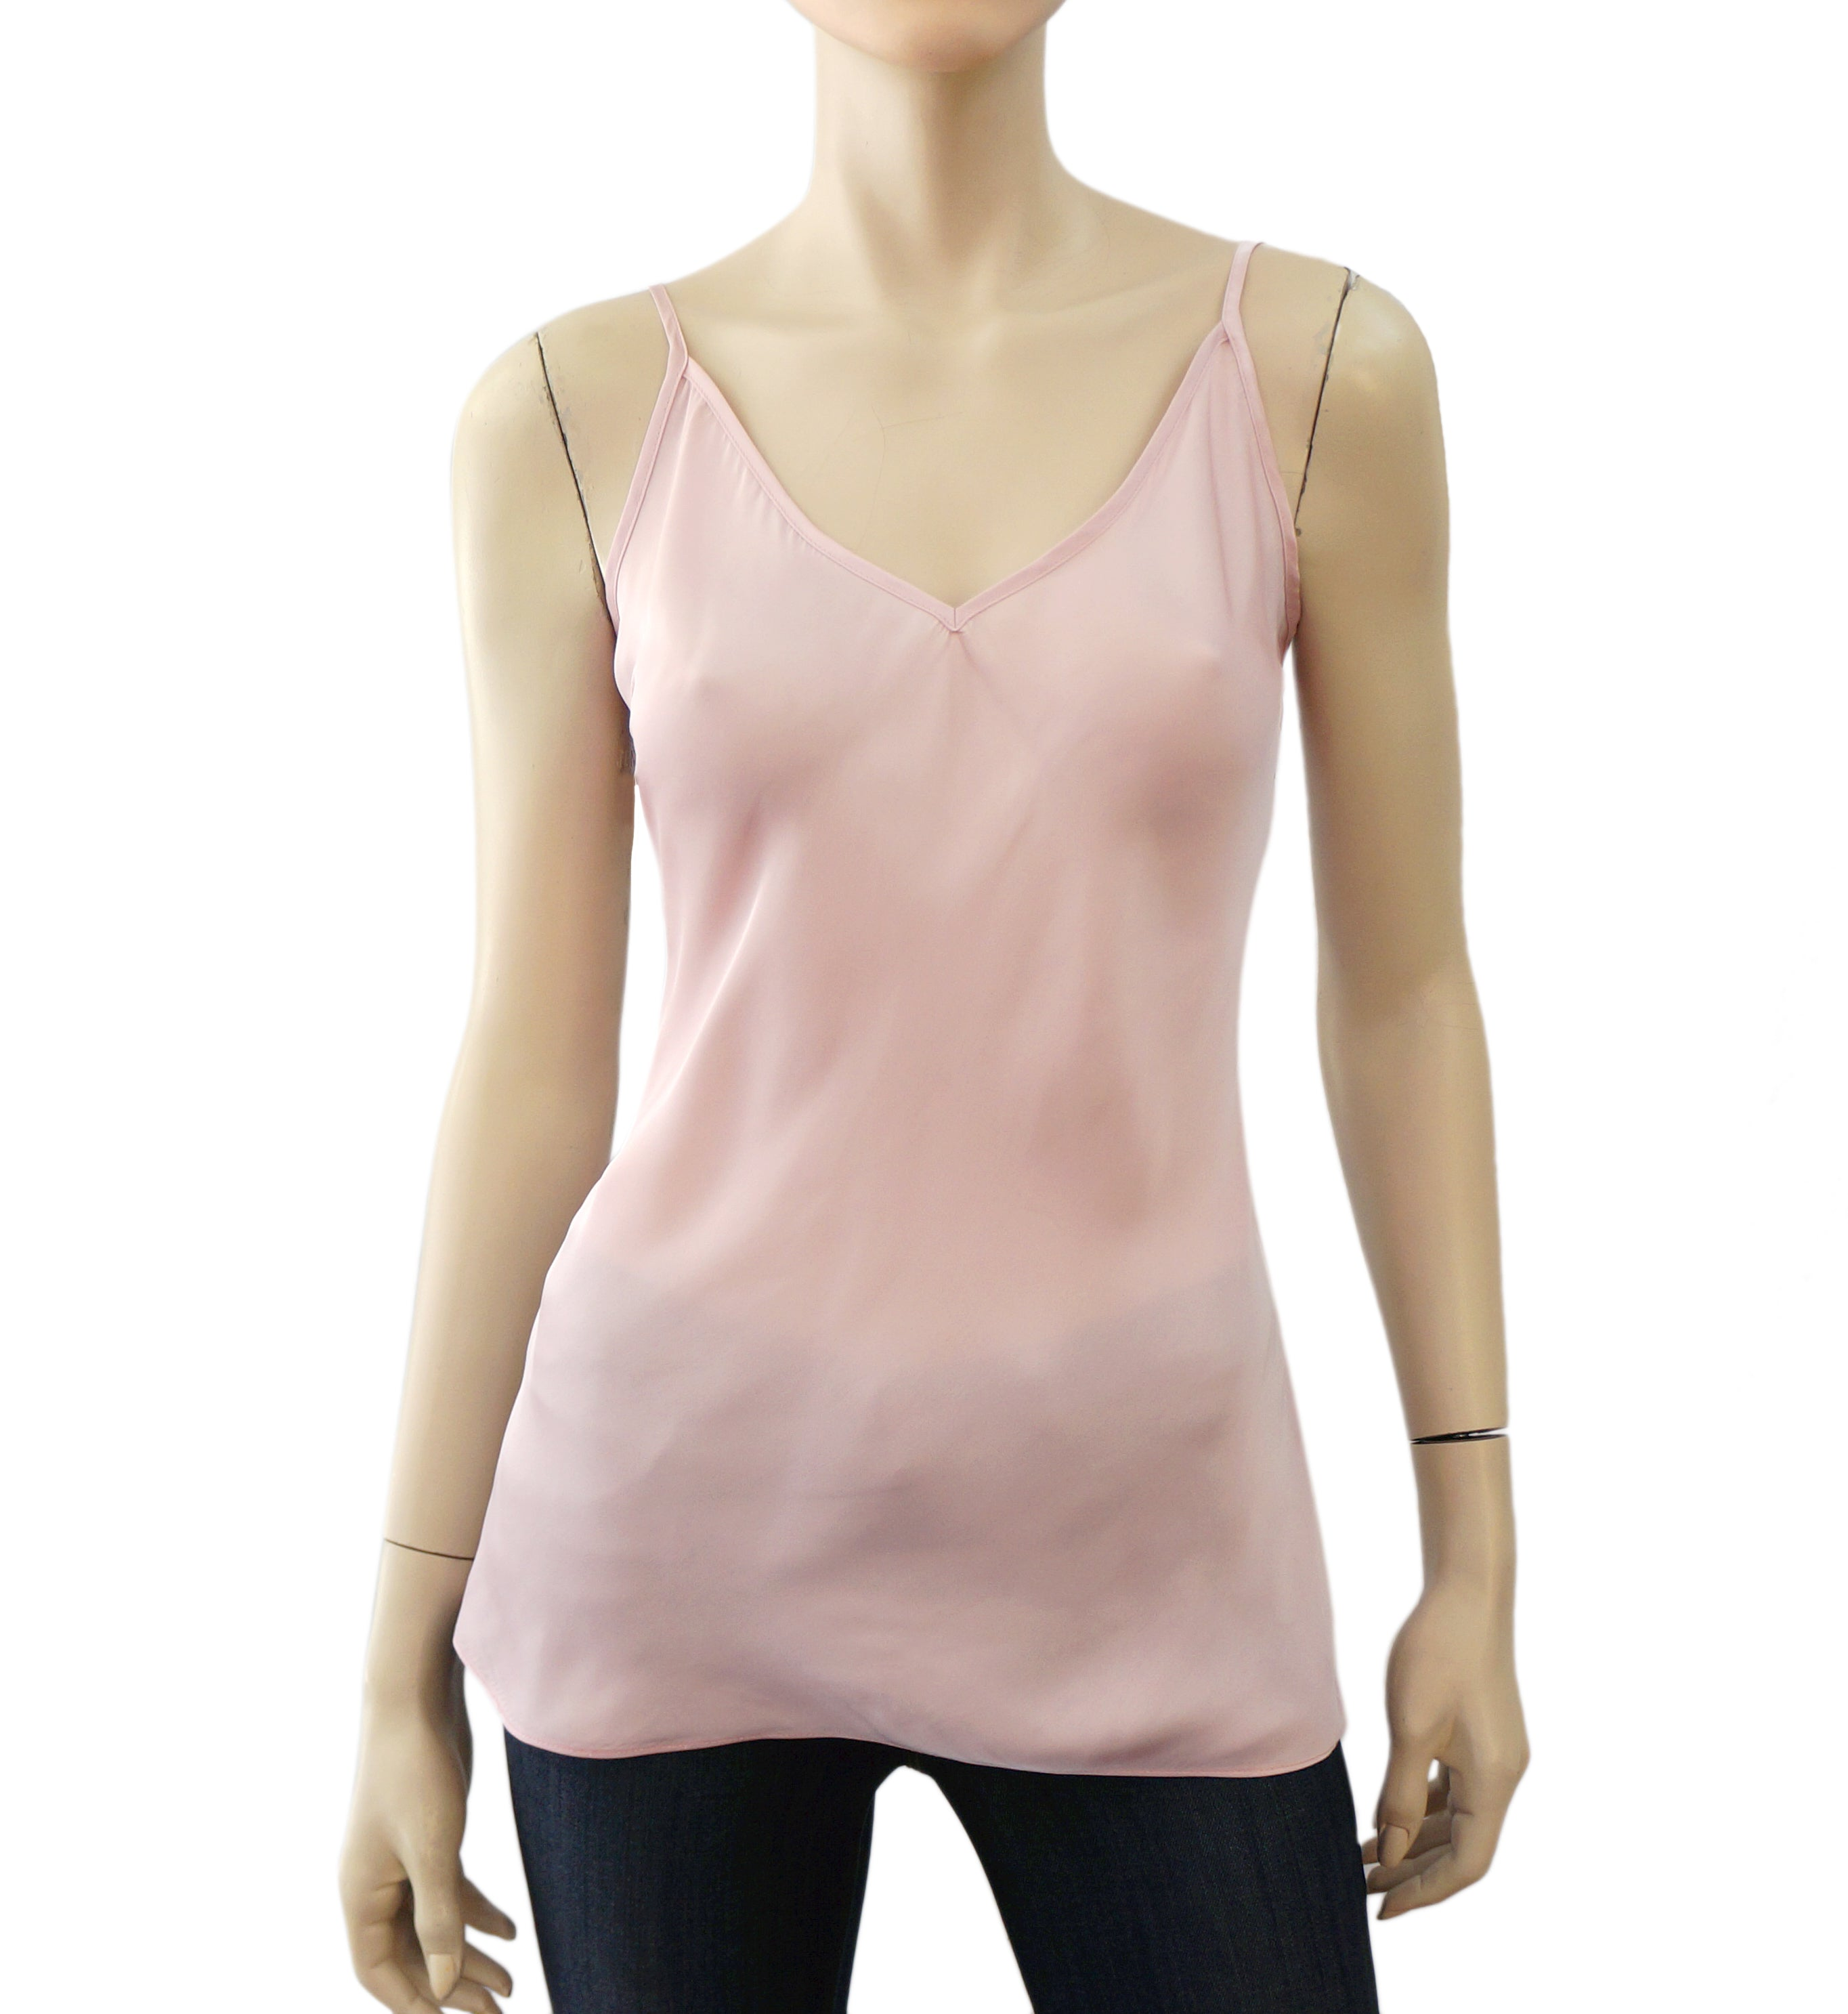 a57b4bf7234 ELIZABETH & JAMES Light Pink Silk Camisole Top L NEW – LaLaStyle